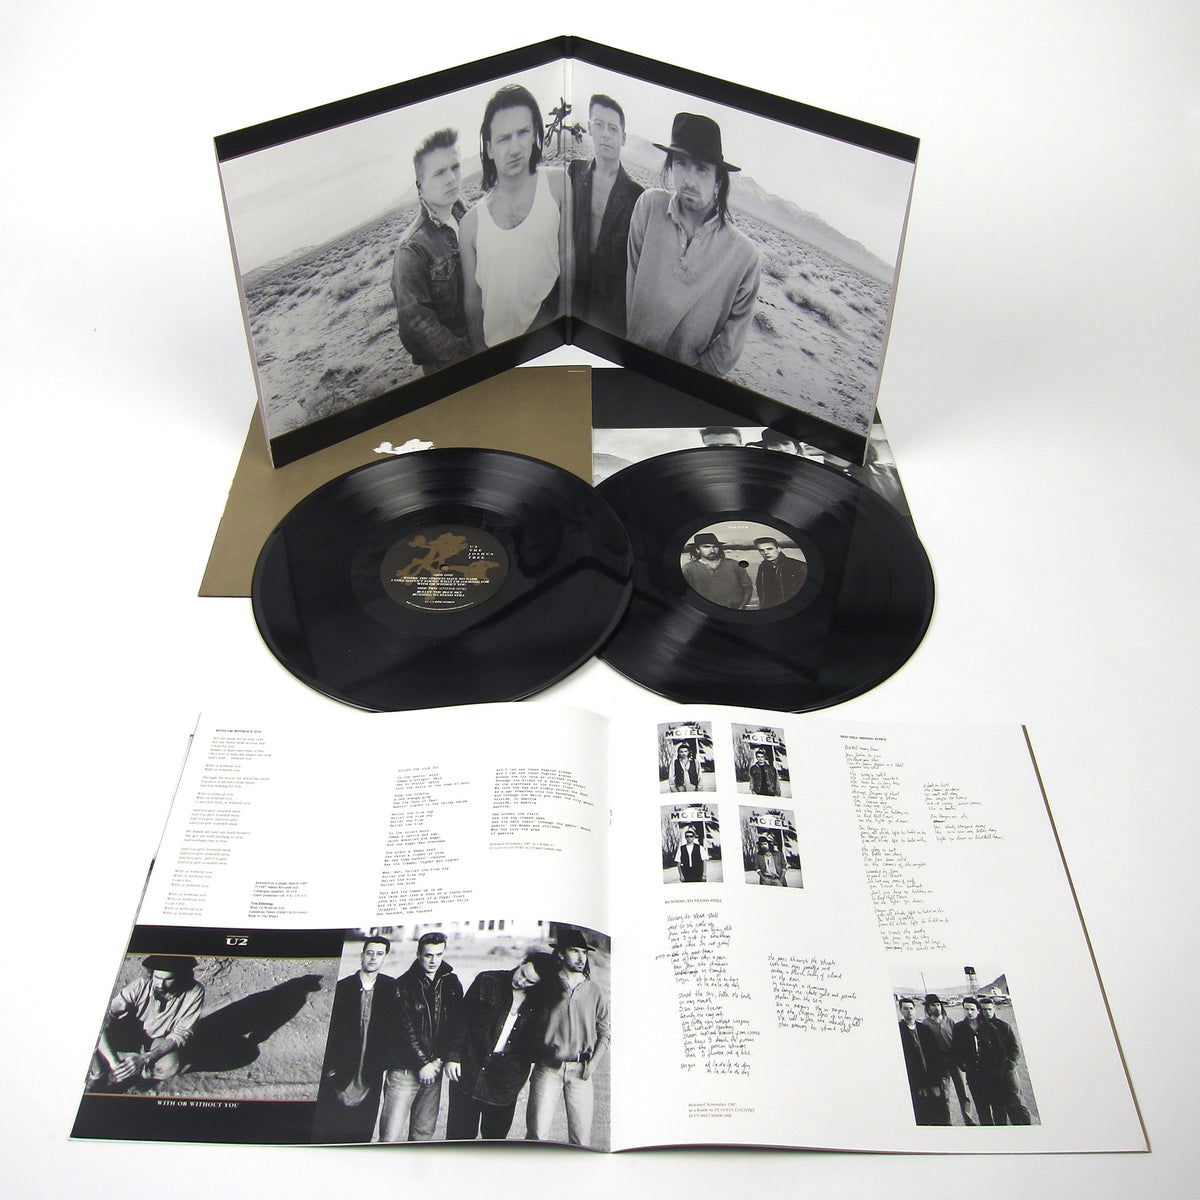 We Normally Sell Two A Day Today We Are Selling Up To 15: U2: The Joshua Tree 20th Anniversary Edition (180g) Vinyl